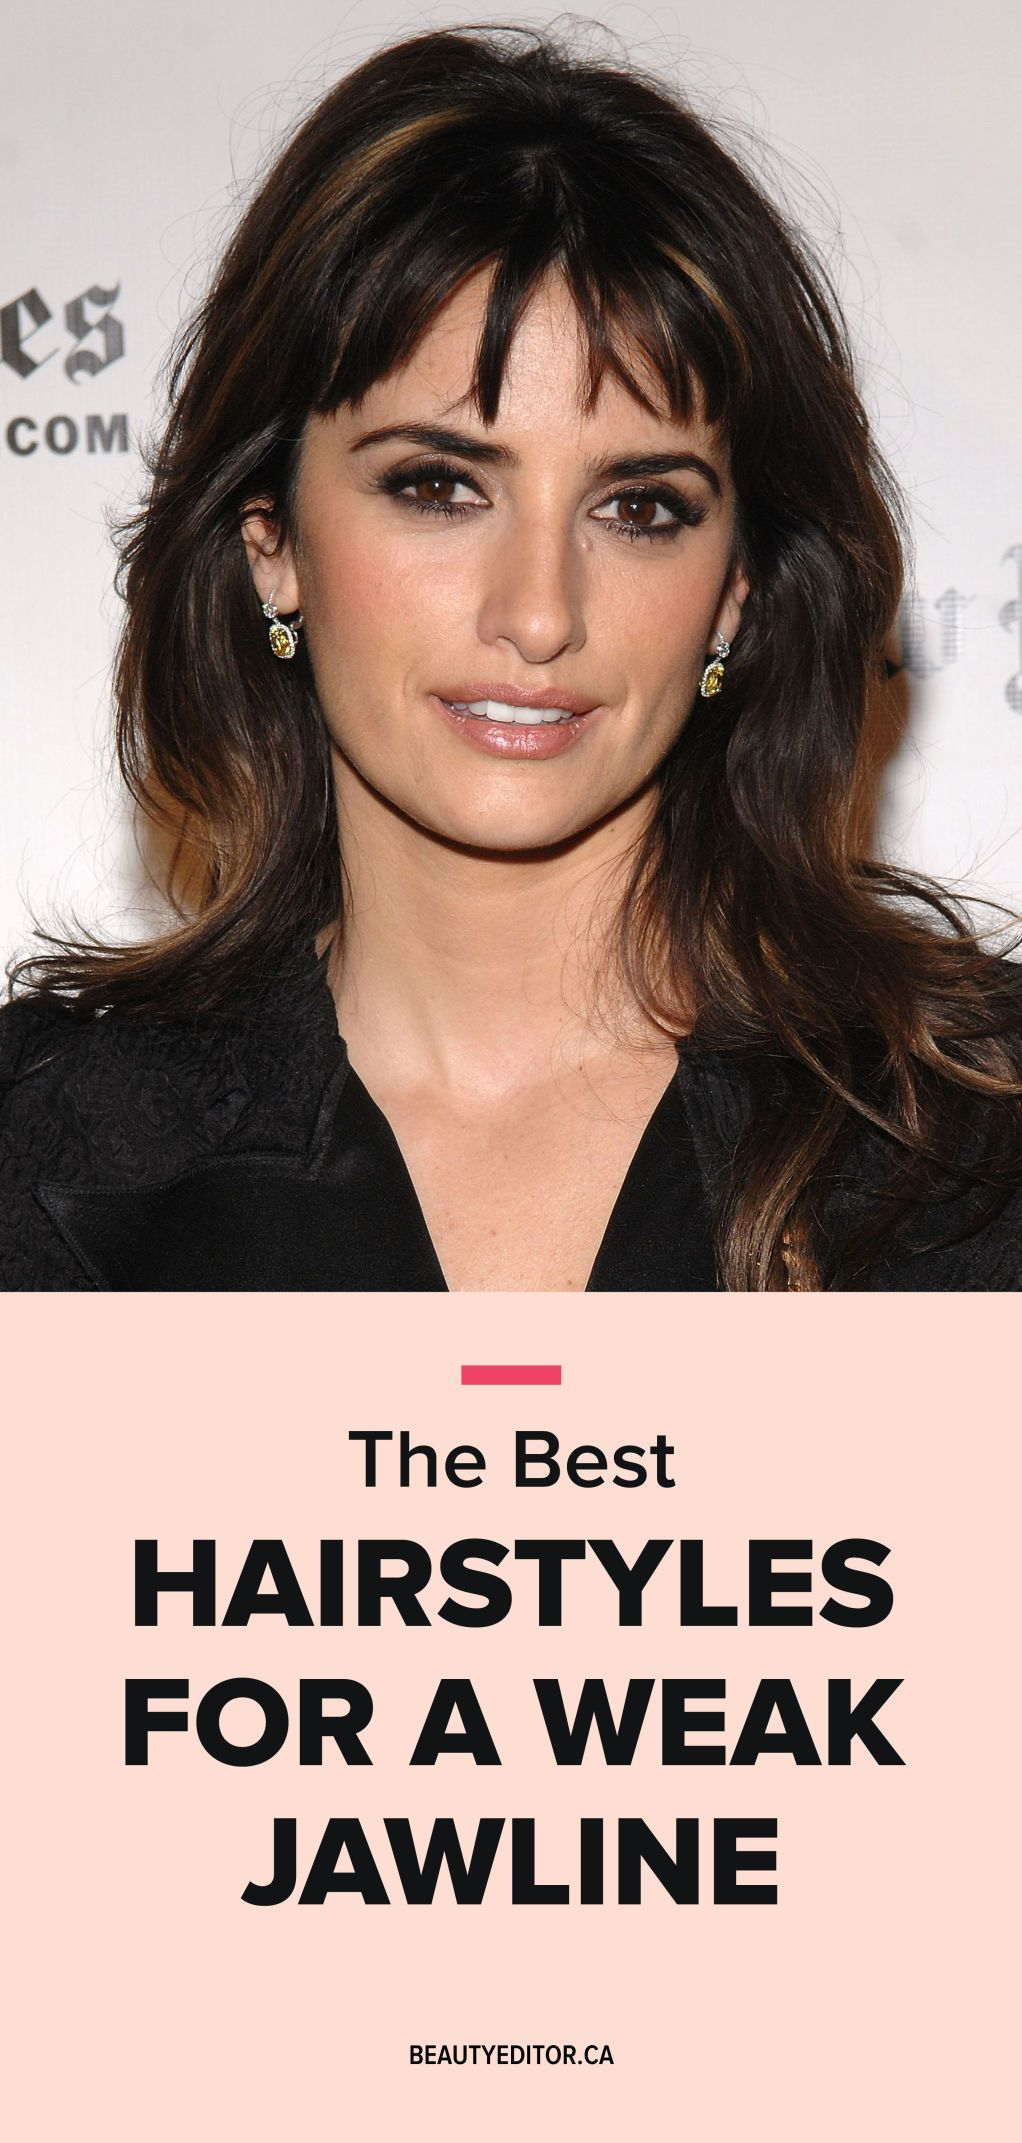 the best hairstyles for a weak jawline | beautyeditor | hair and